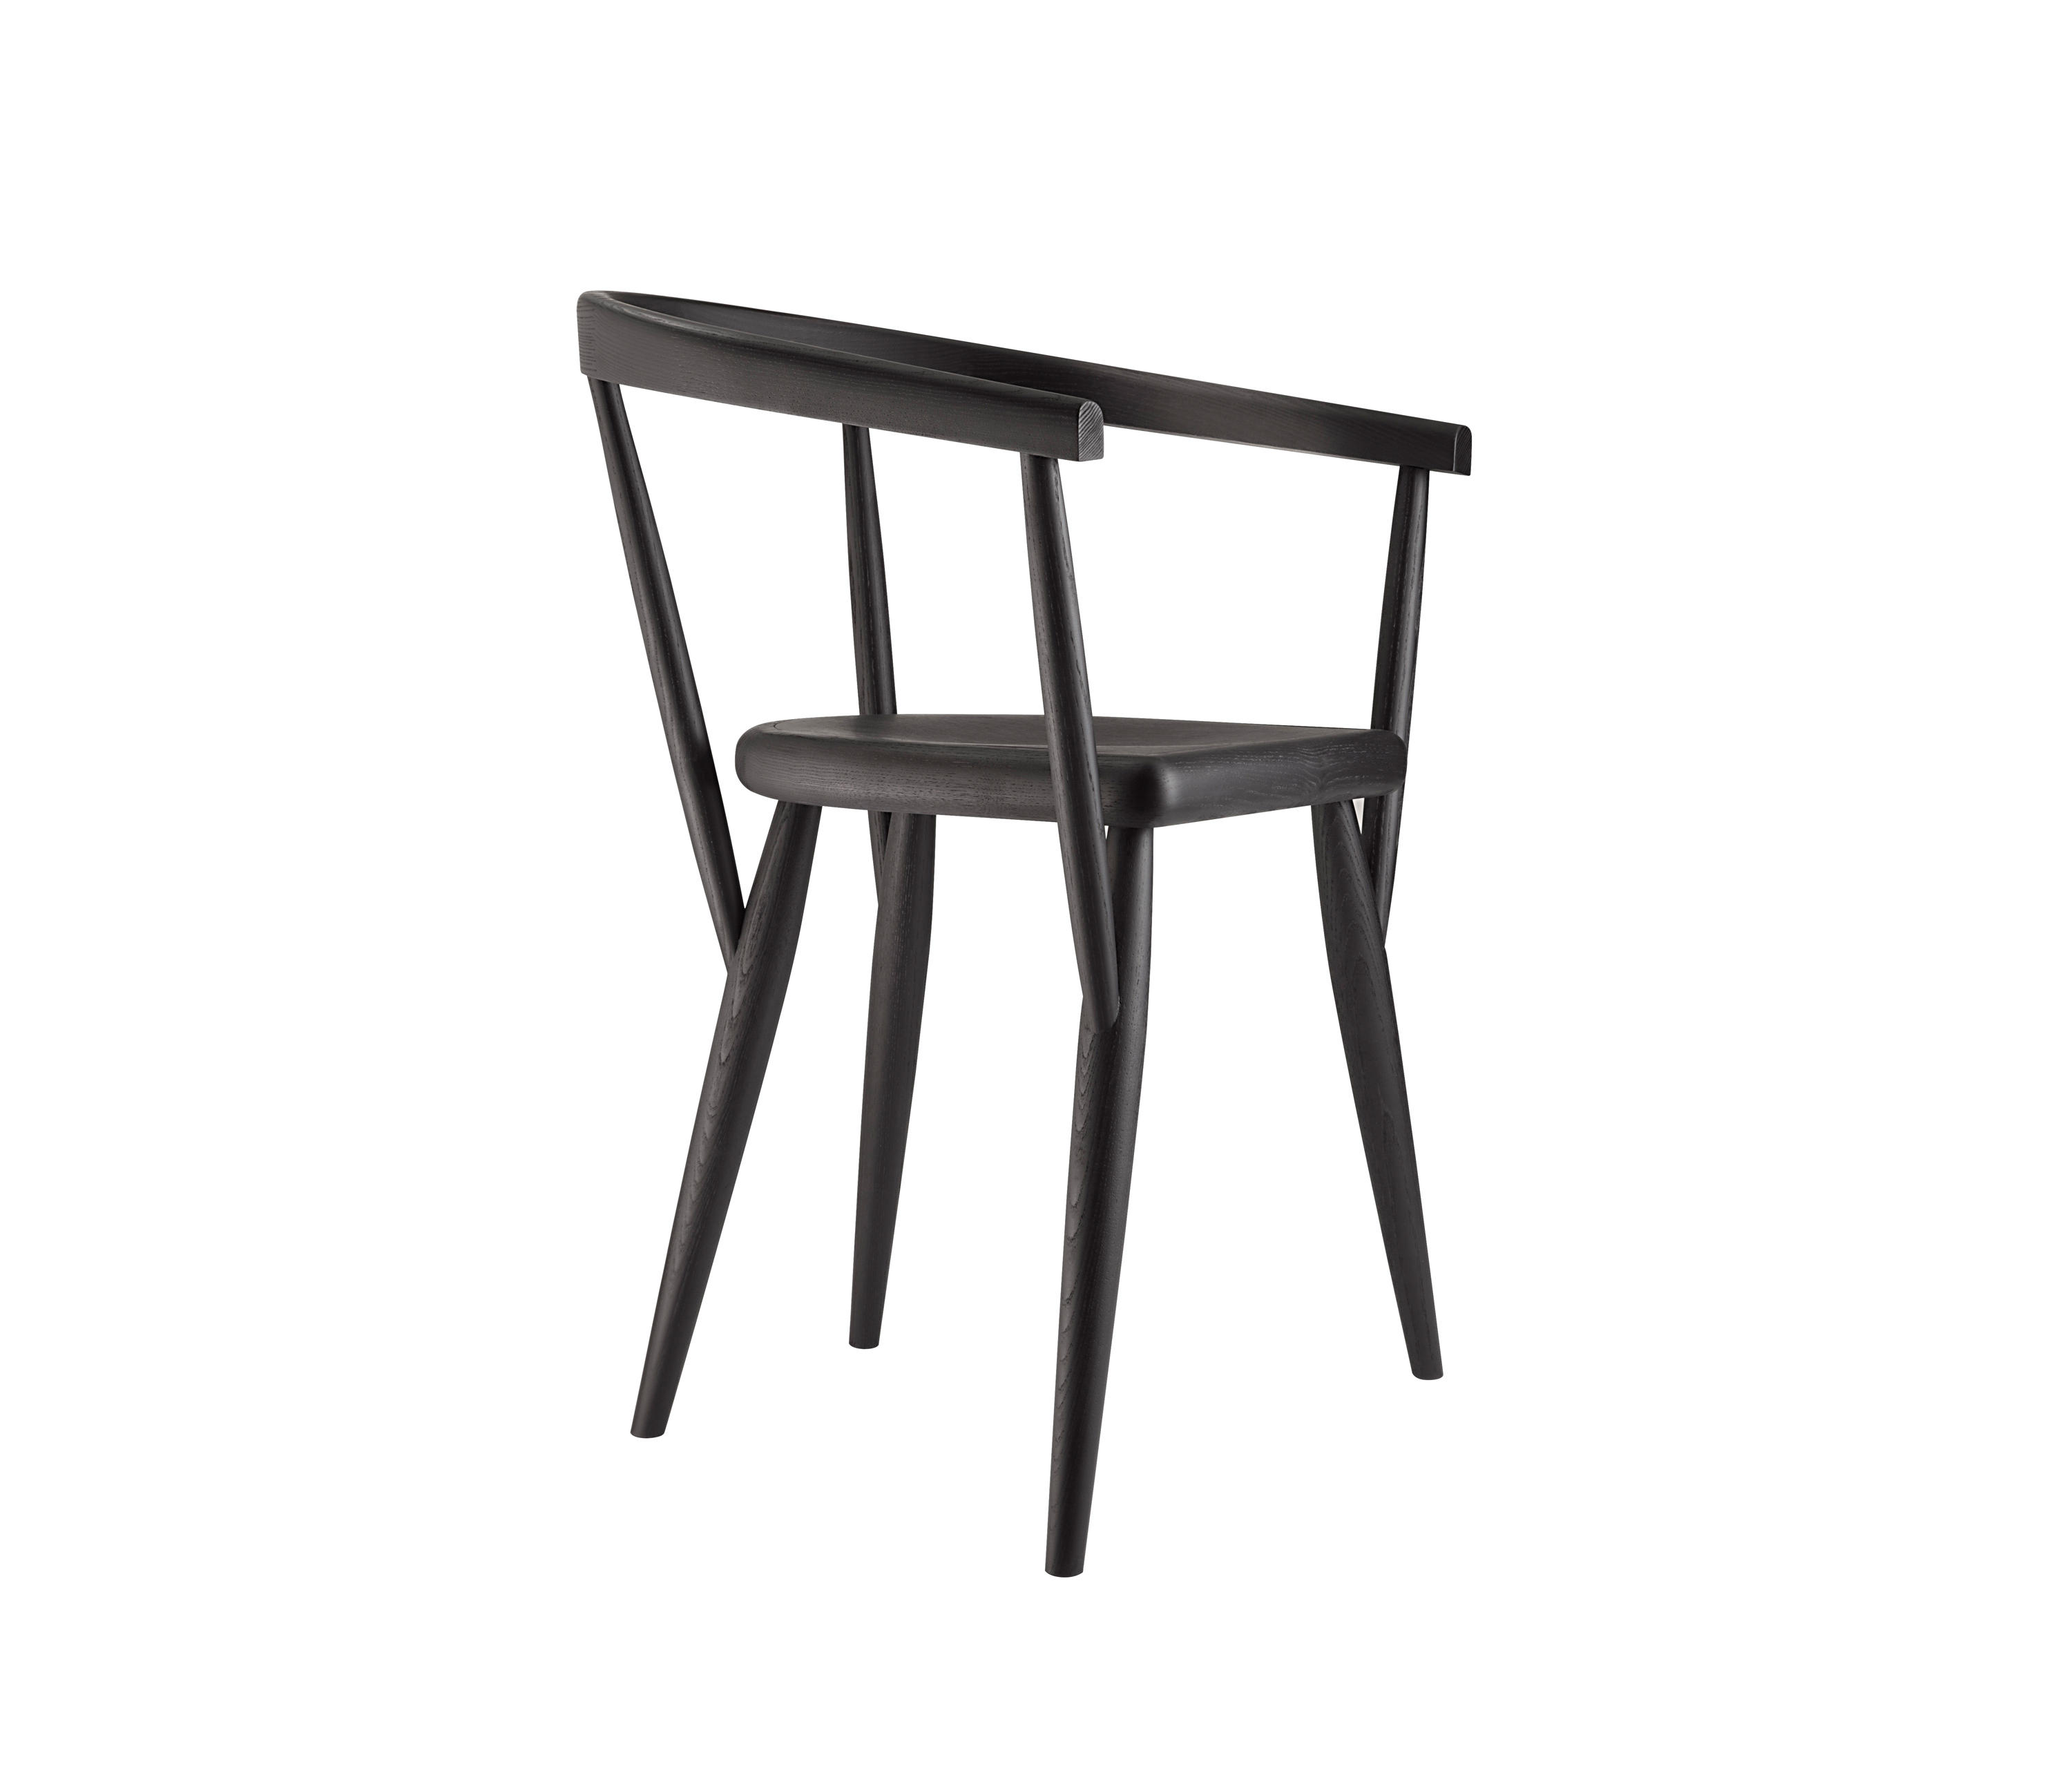 ... Lina Chair By Adele C | Restaurant Chairs ...